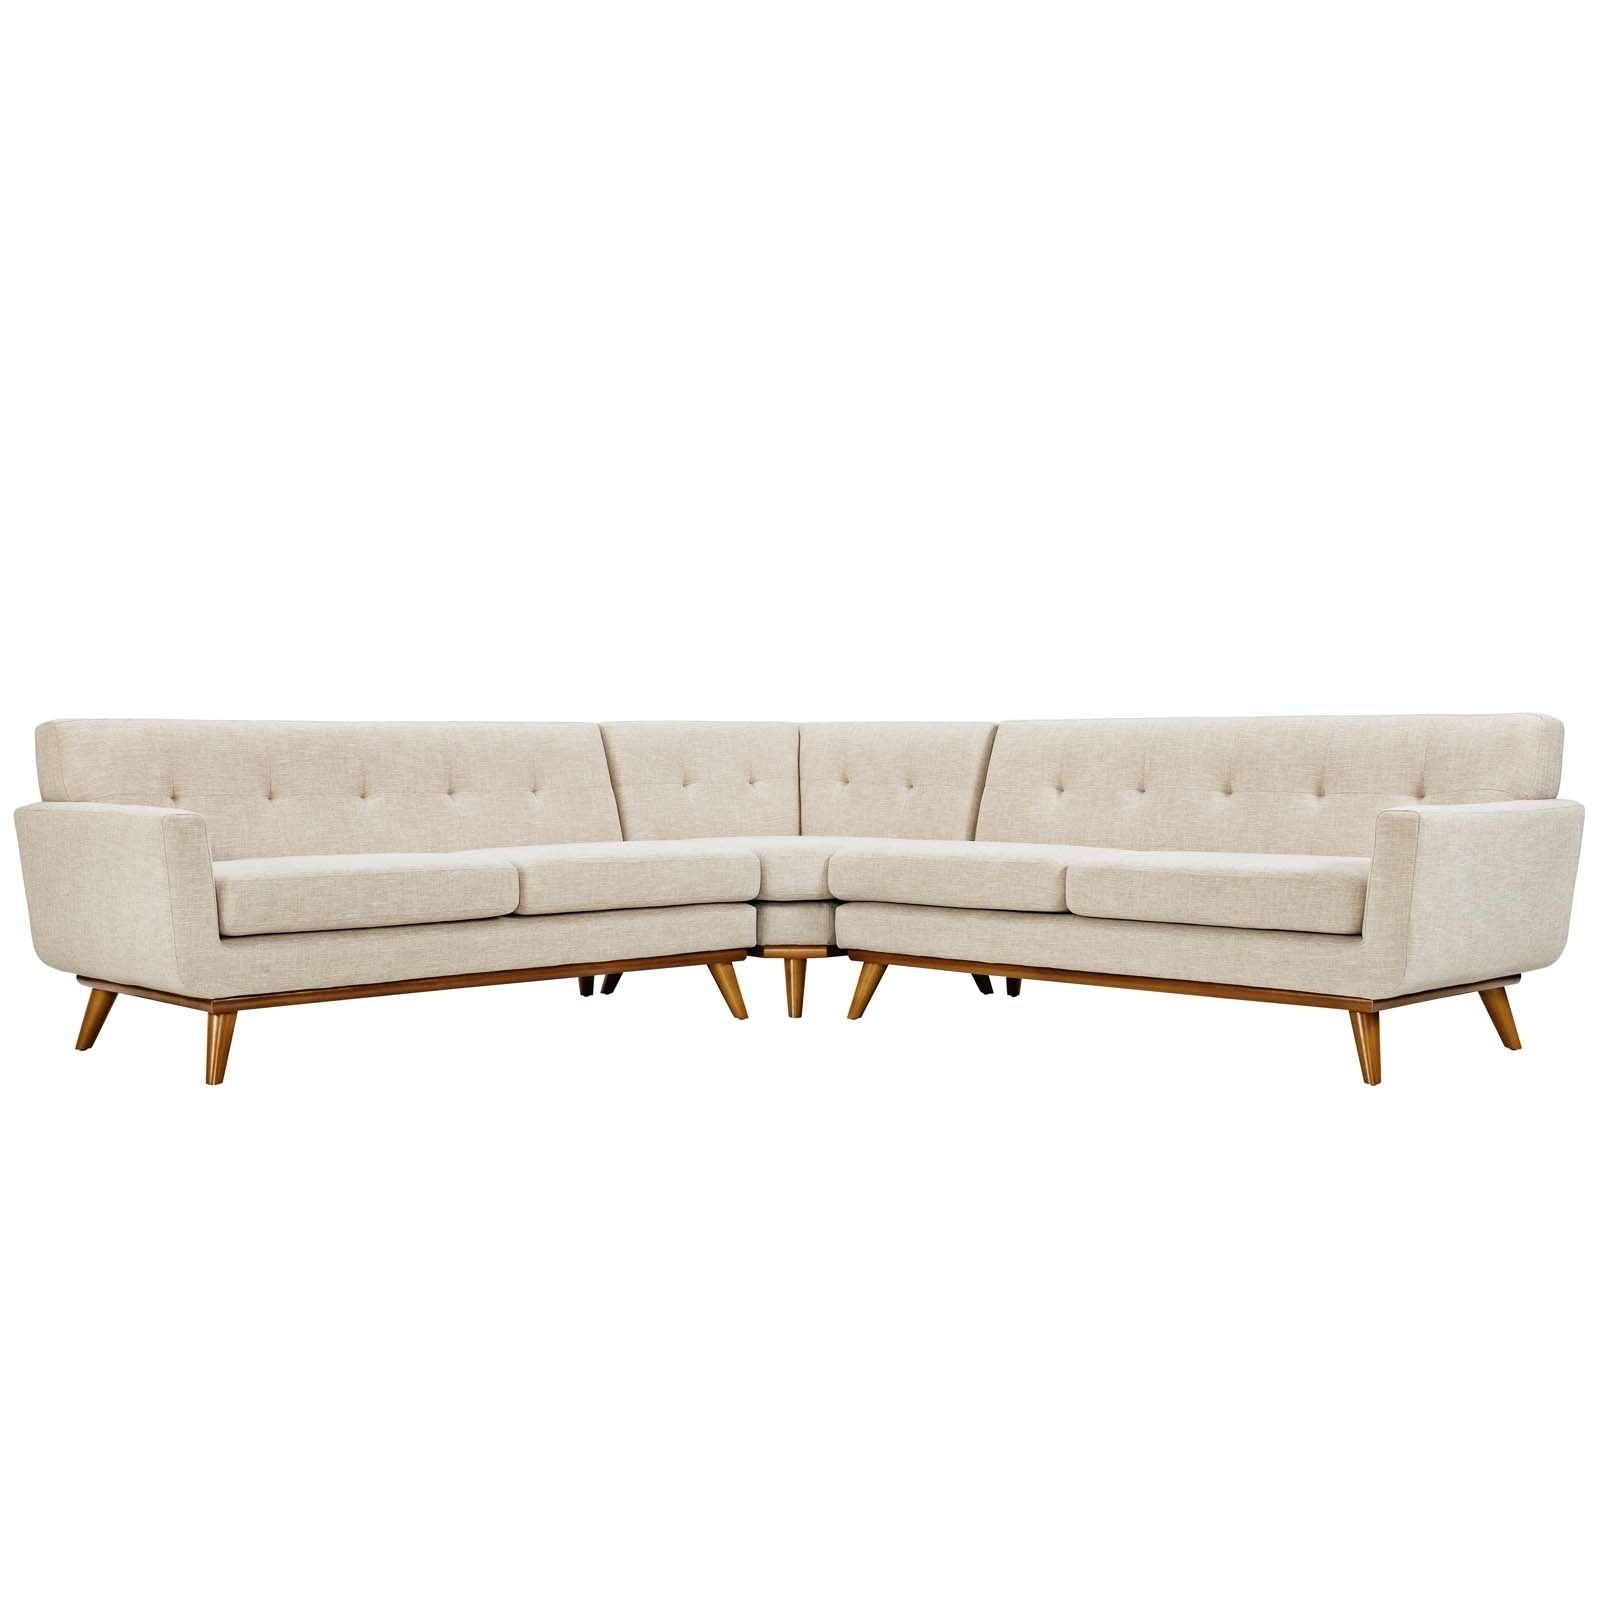 Shop Engage L-Shaped Sectional Sofa - Free Shipping Today ...